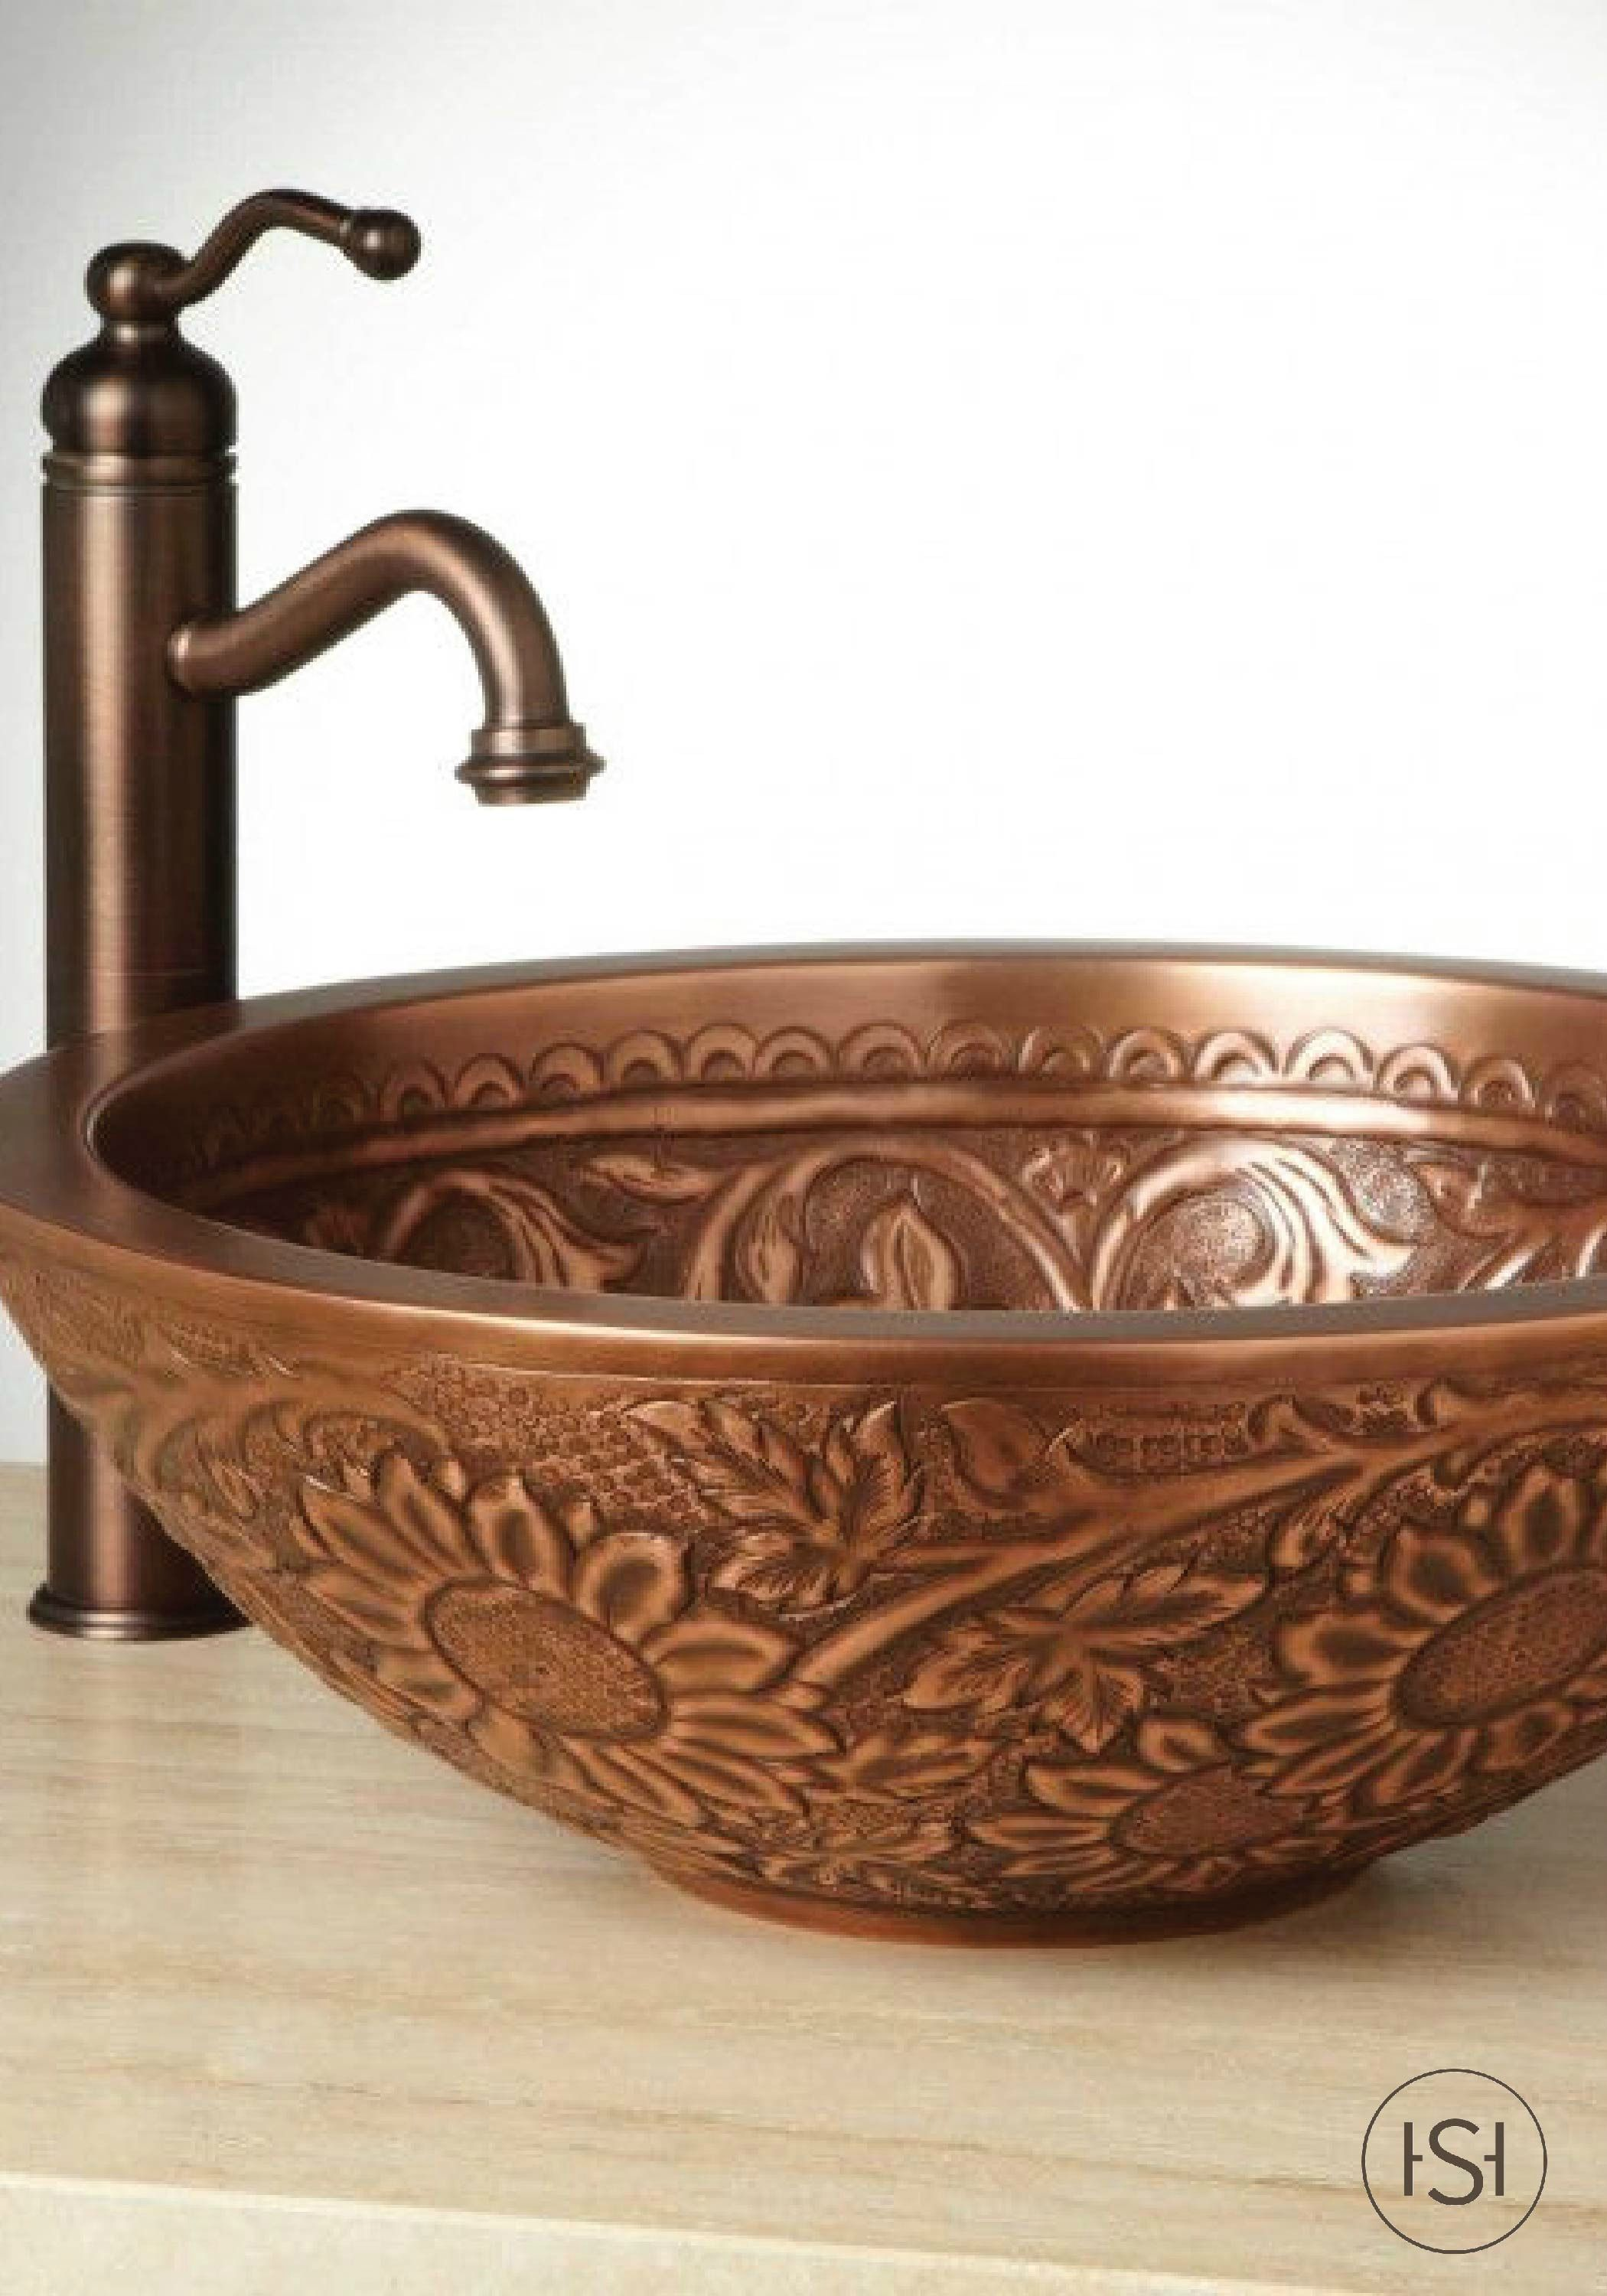 Add A Bit Of Sunshine To Your Home With The Sunflower Design This Copper Vessel Sink From Signature Hardware